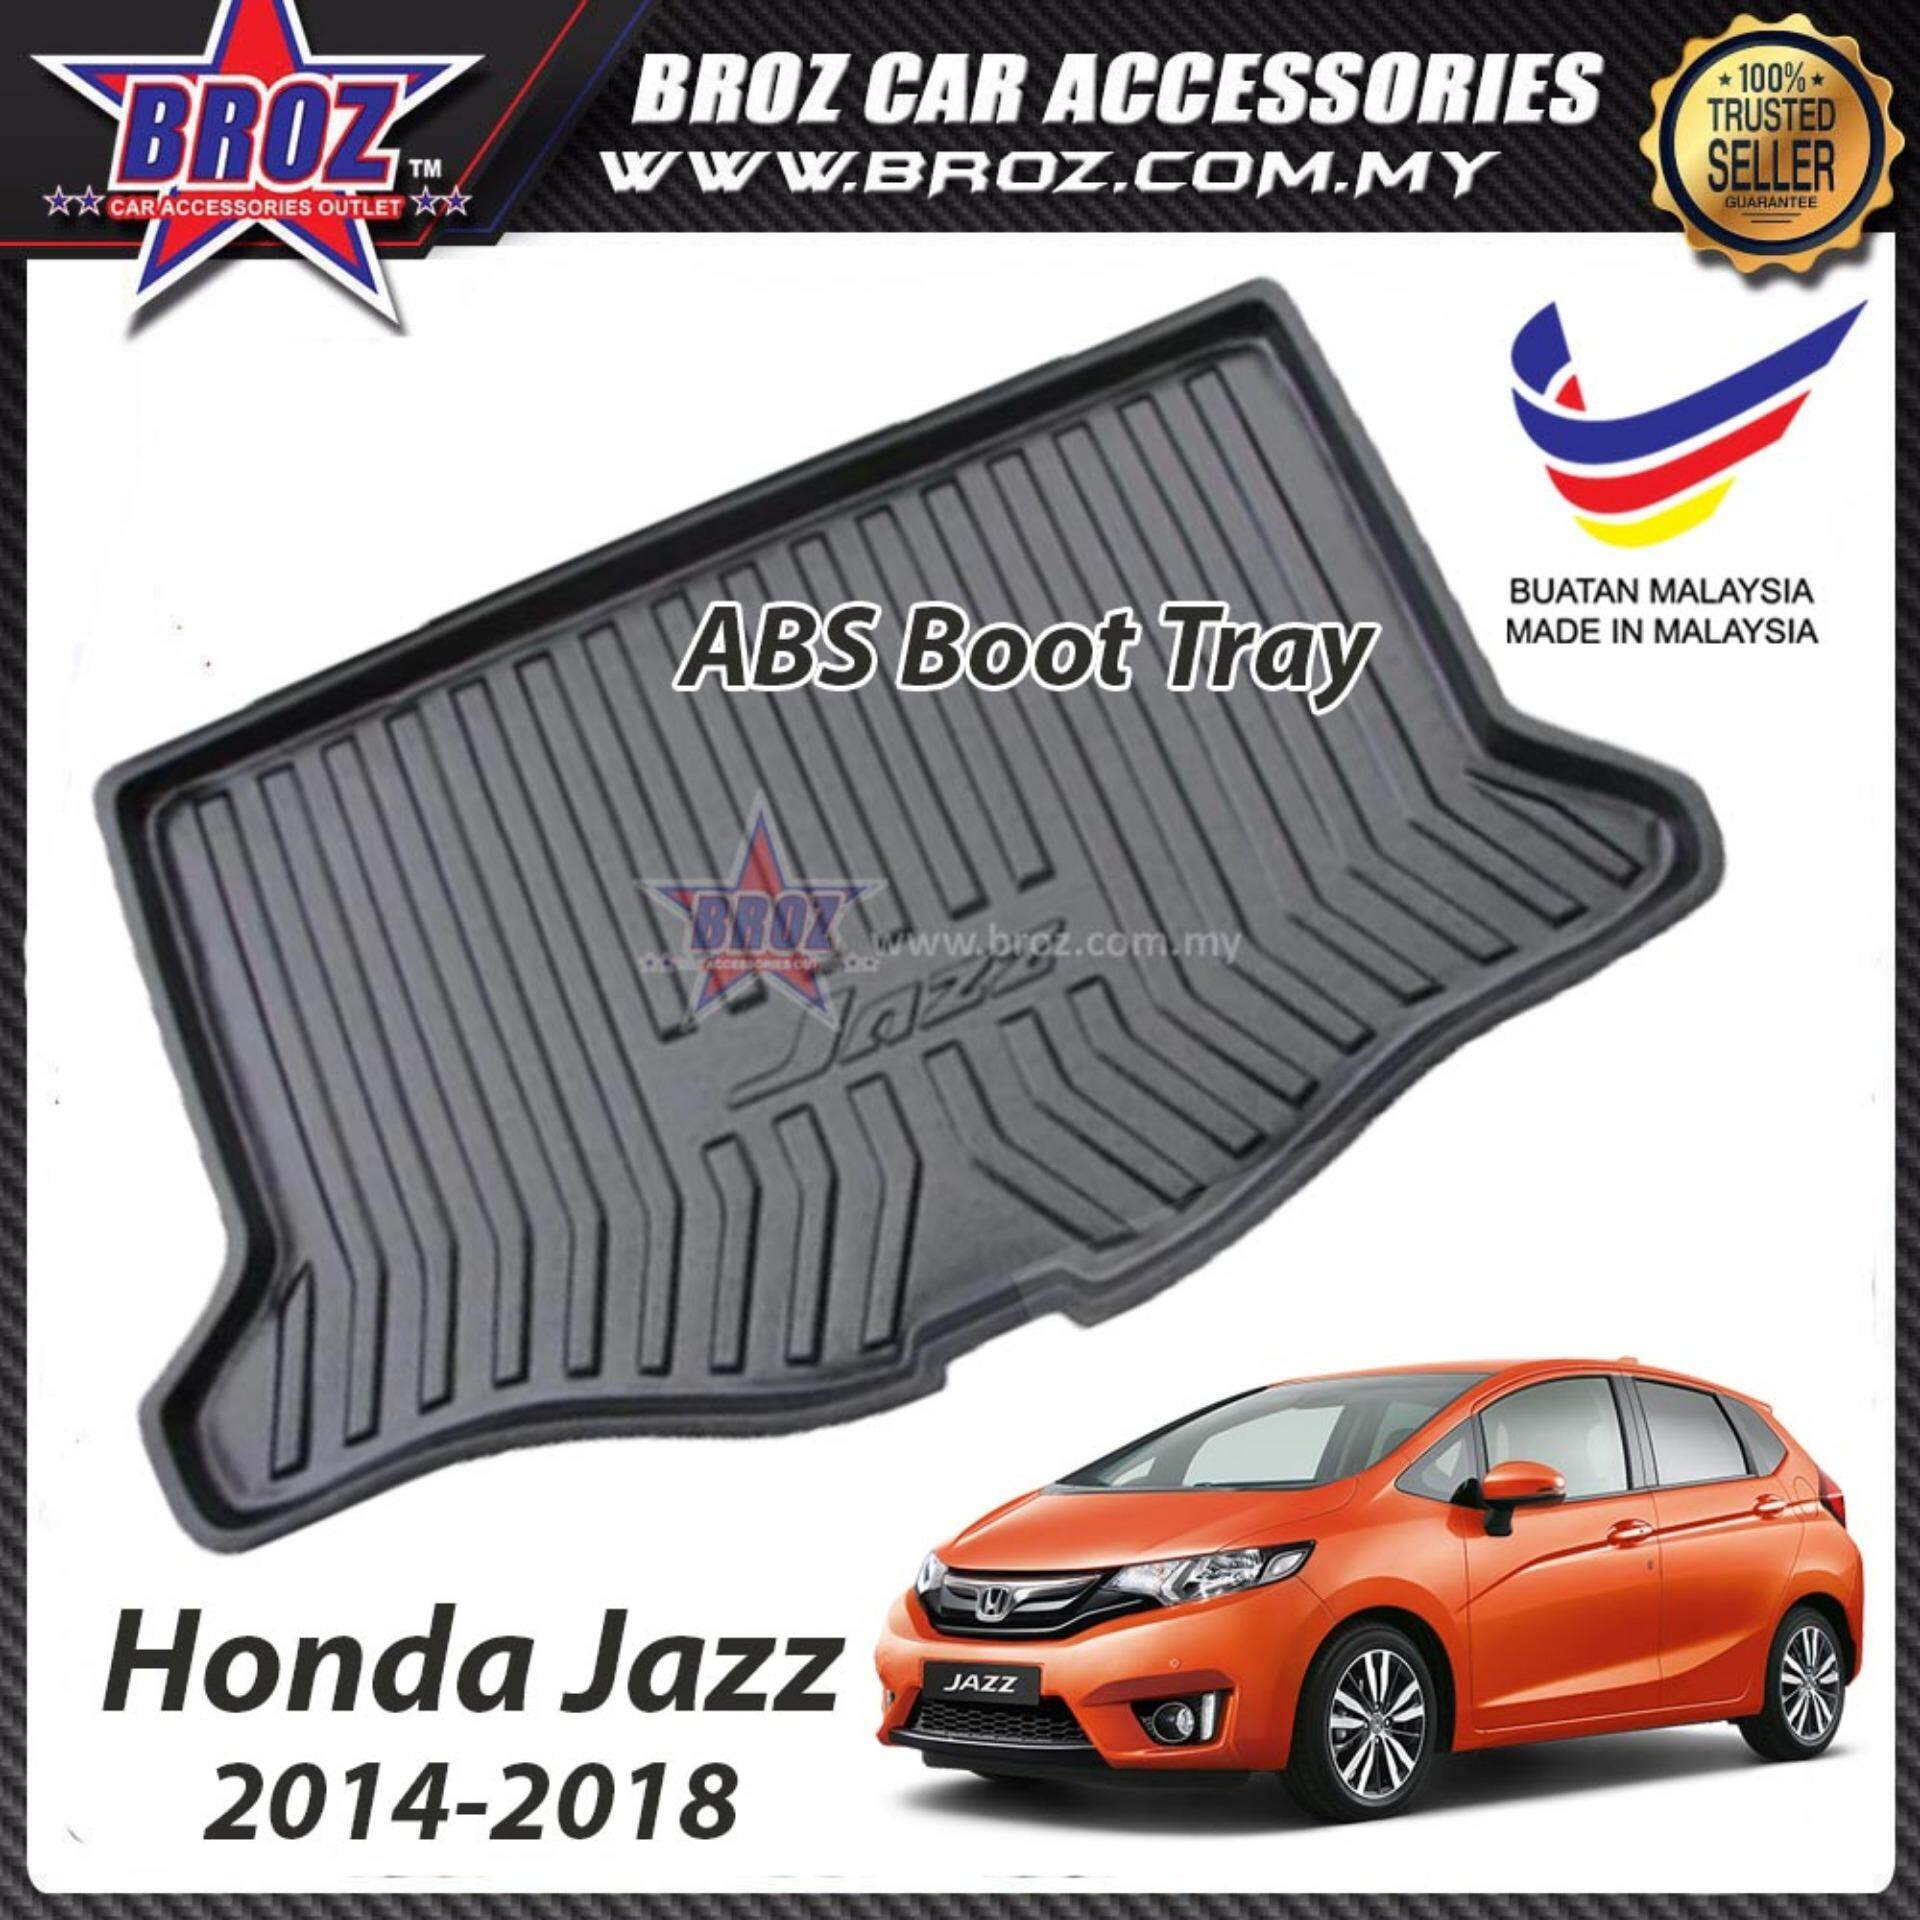 Honda Jazz 2014-2018 ABS Car Rear Boot Trunk Tray